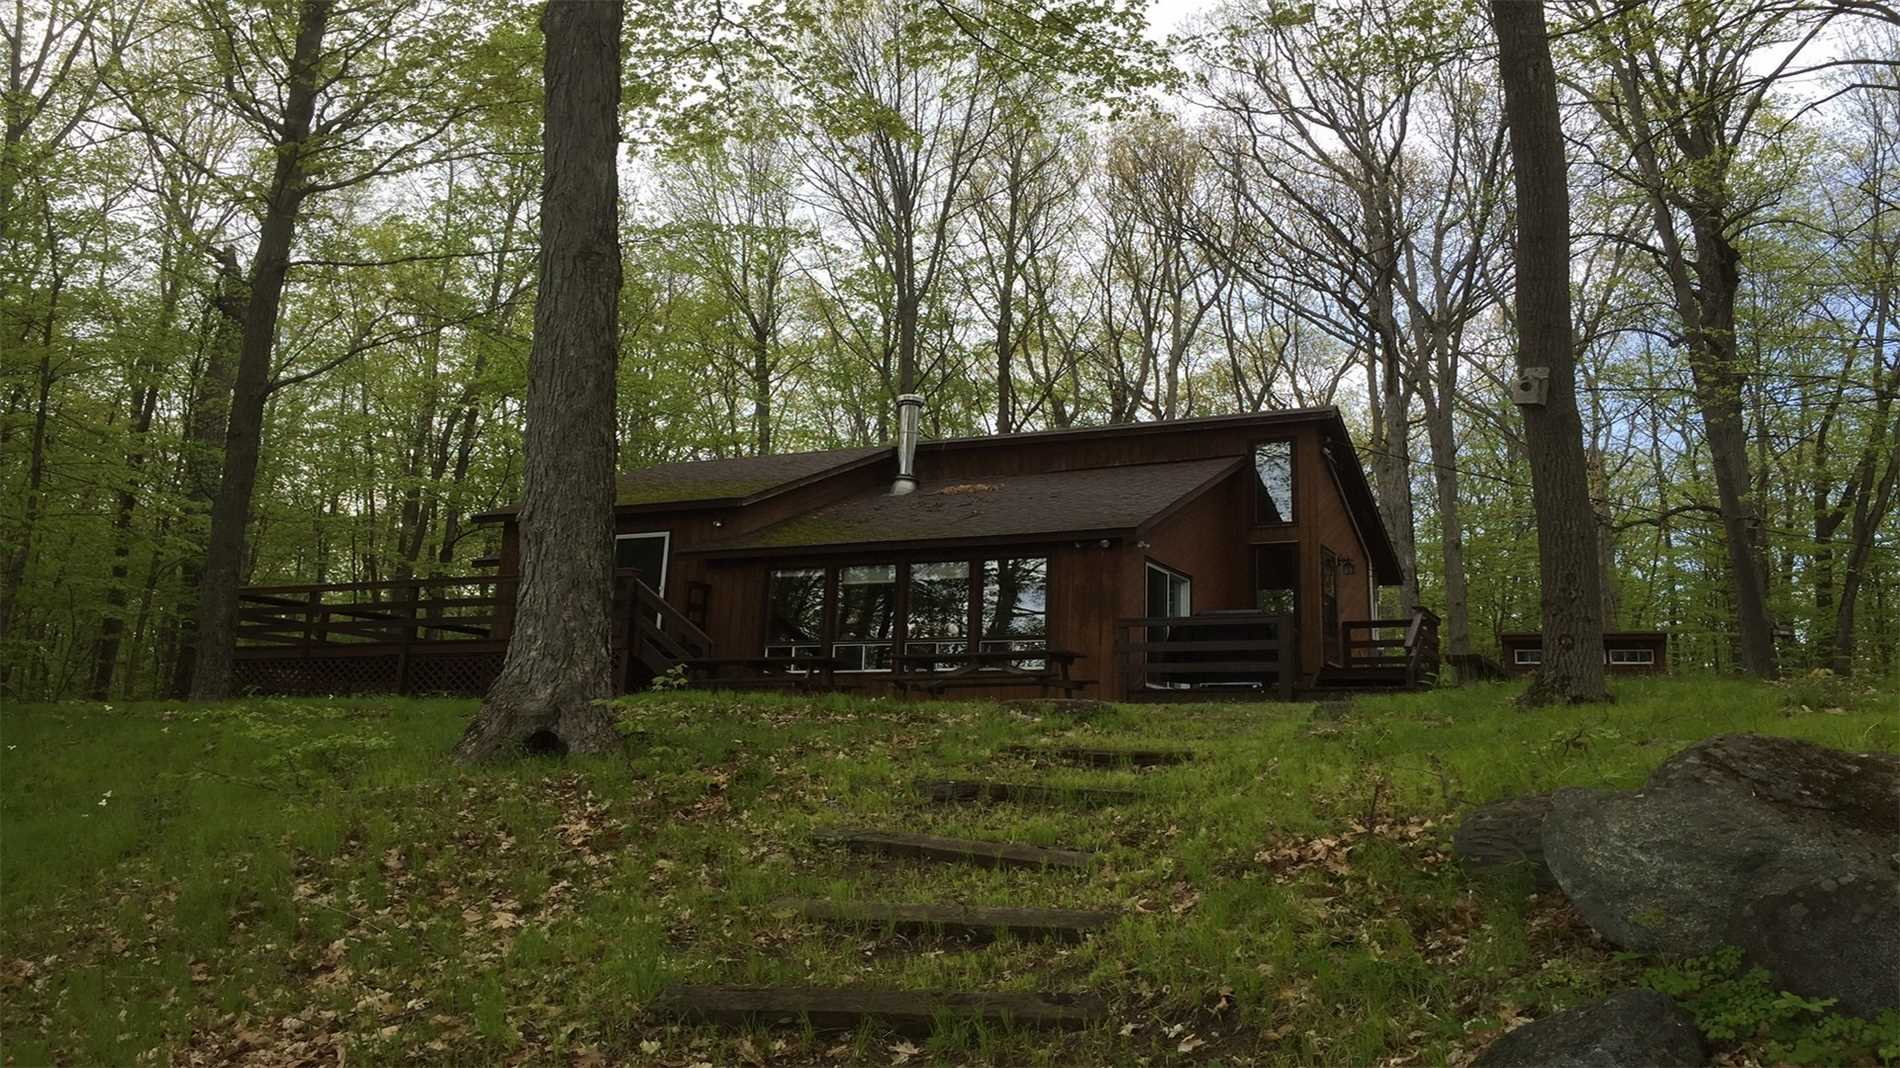 Waterfront Cottage Built 1982, 3 Bedroom, 1 Bath, Septic, Shore Well, Uv Water System, Full Year Private Road $300 Ann.  Large 2.25 Acre Lot, Large Treed With Boathouse And 2 Outbuildings.  Recently Upgrades Flooring & Bedroom Reno 2018.  New 40 Ft Floating Dock (2017).  585 Ft Waterfront On Crowe Lake, Marmora, Ontario.